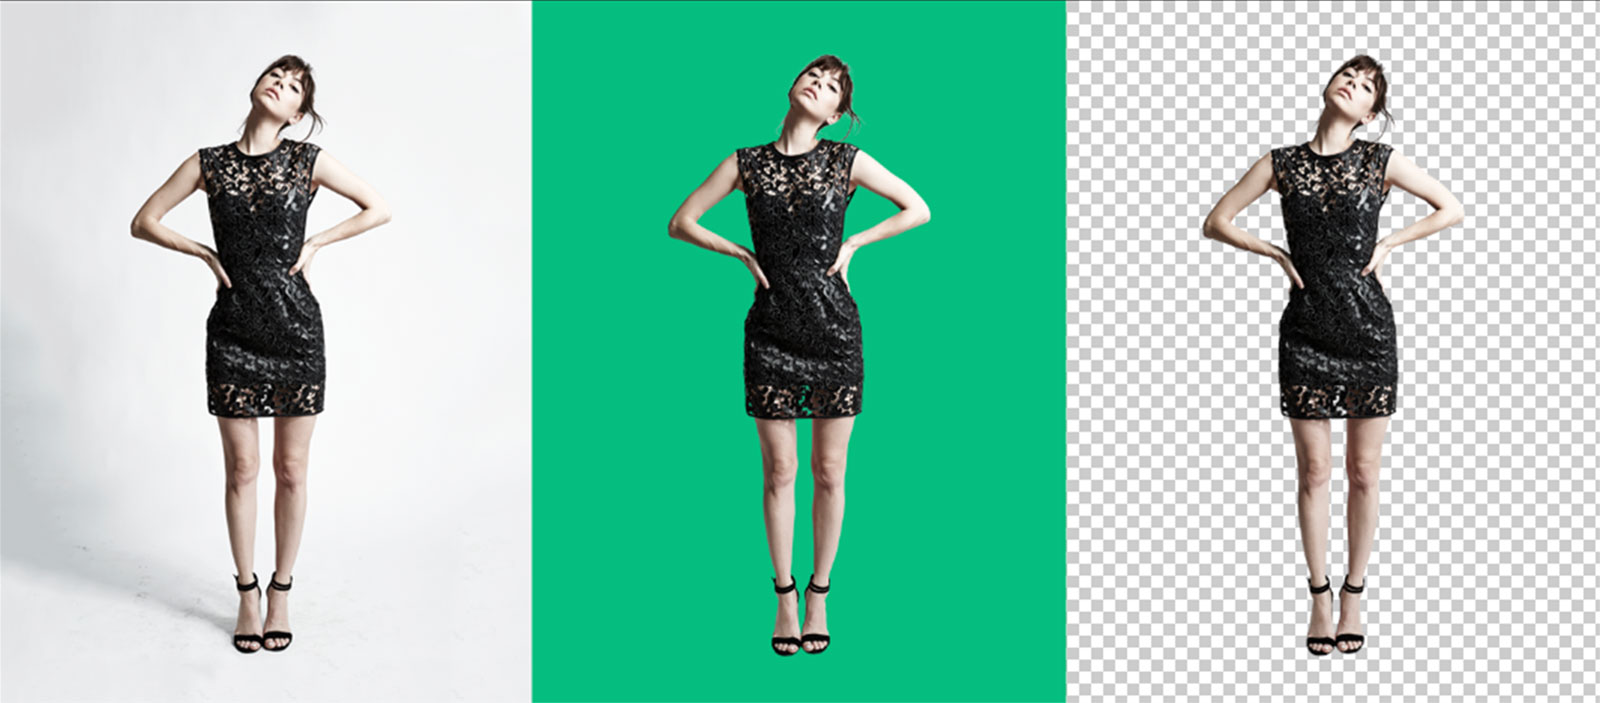 Image result for clipping path service